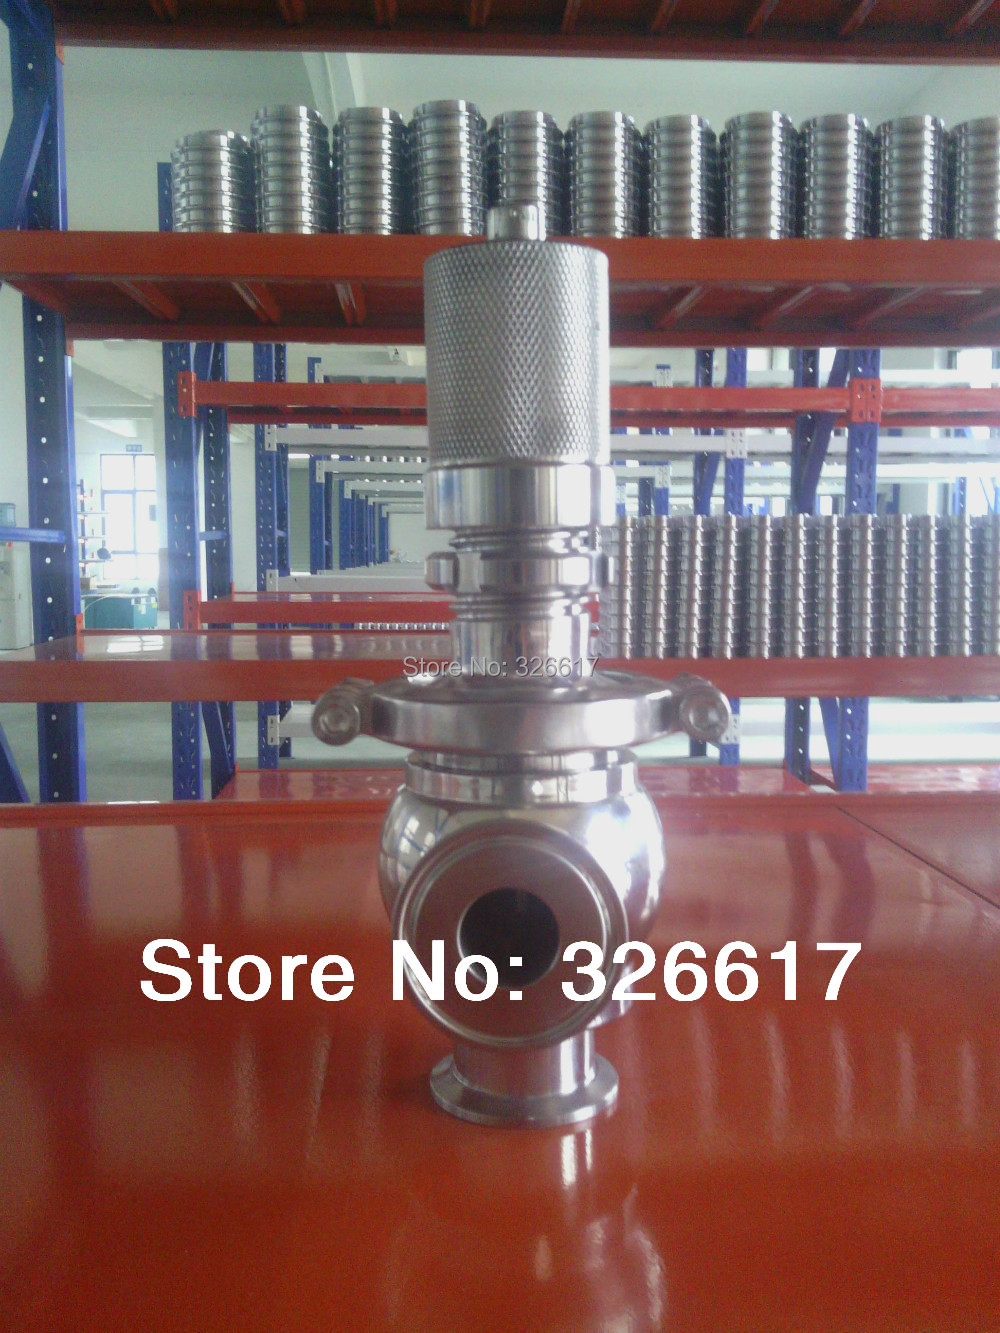 где купить Sanitary 11/2inch Tri Clamp Safety Valve SS304 Stainless Steel Pipeline Air Release Valve по лучшей цене